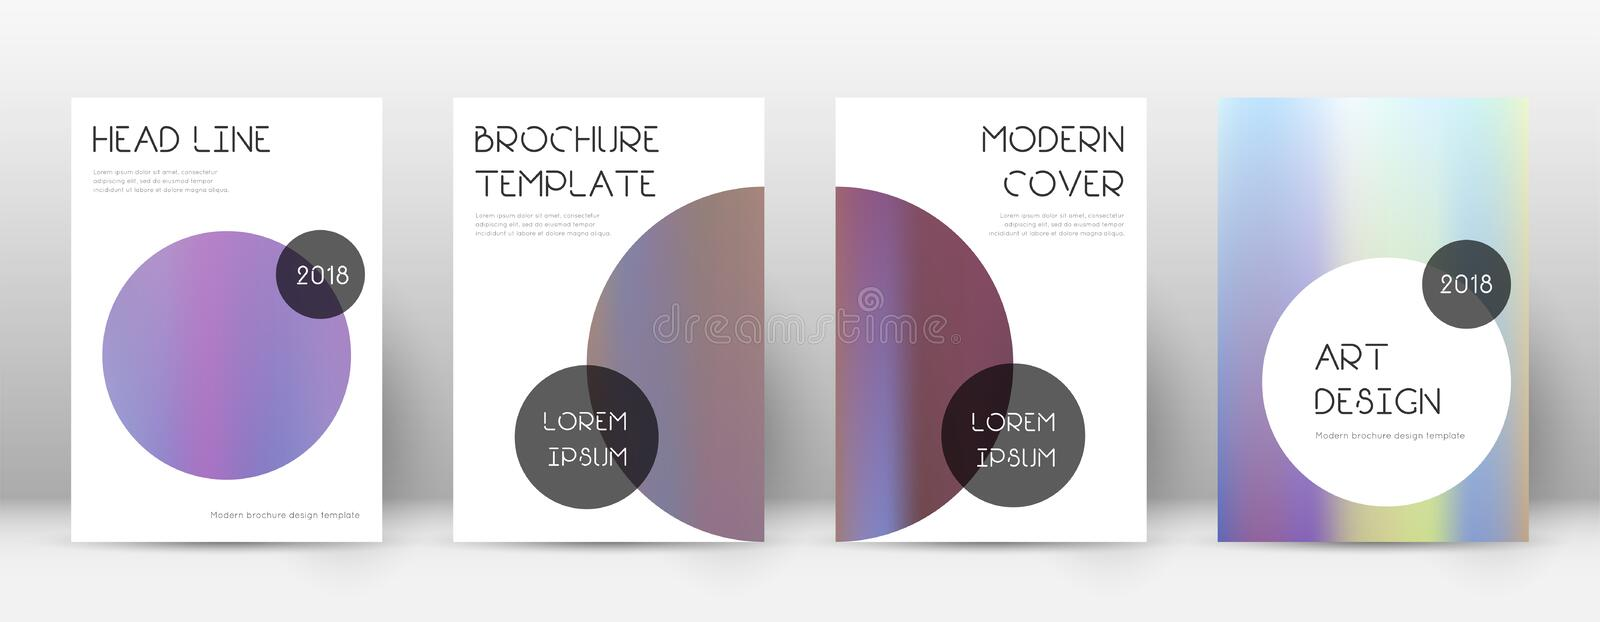 Flyer layout. Trendy decent template for Brochure,. Annual Report, Magazine, Poster, Corporate Presentation, Portfolio, Flyer. Beauteous bright hologram cover vector illustration